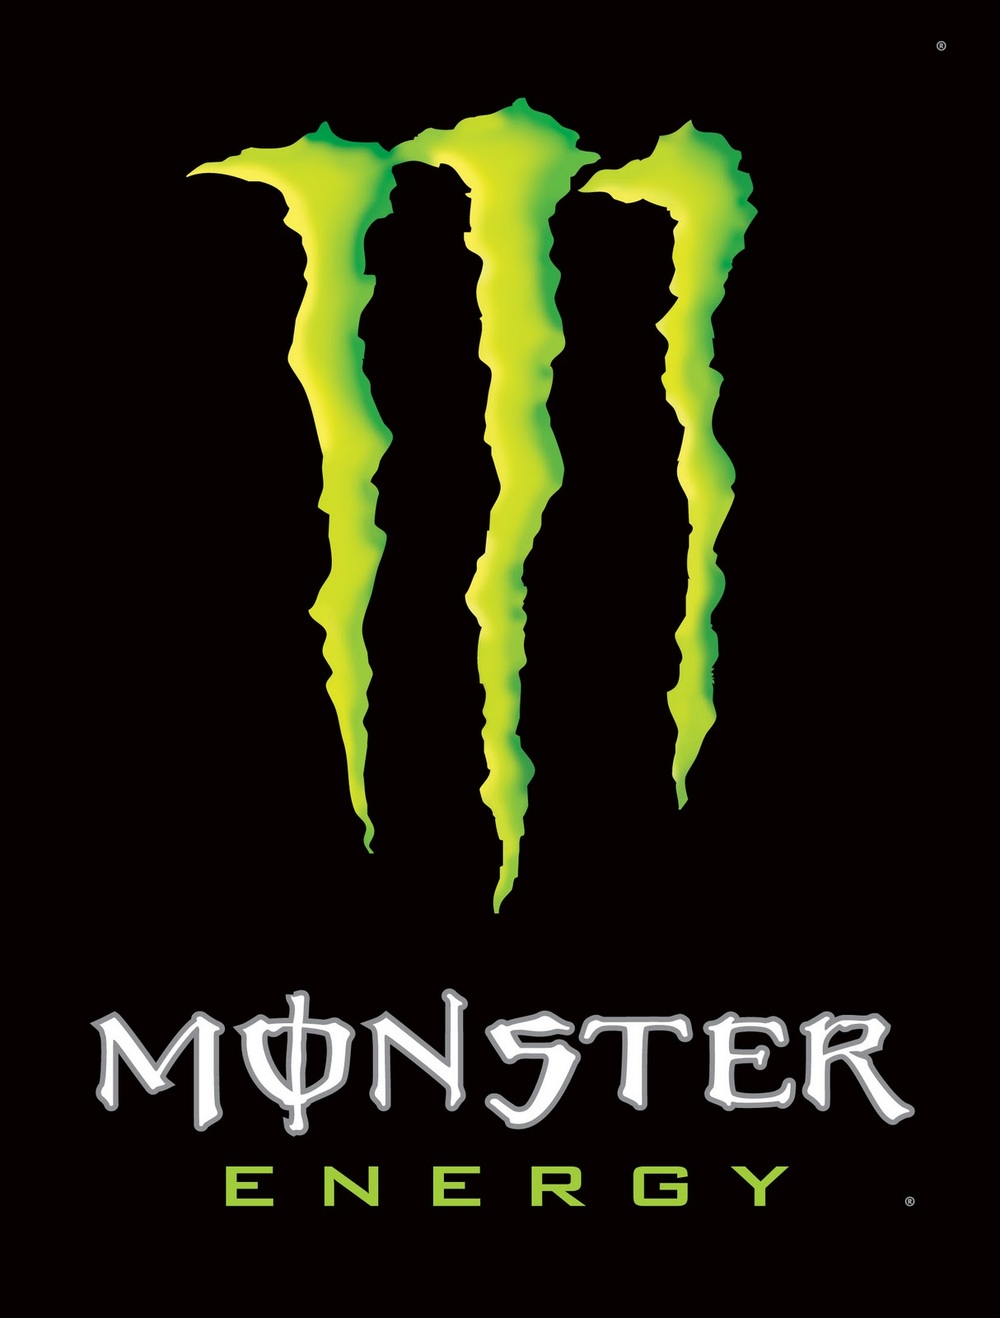 monsterenergydrink.jpg